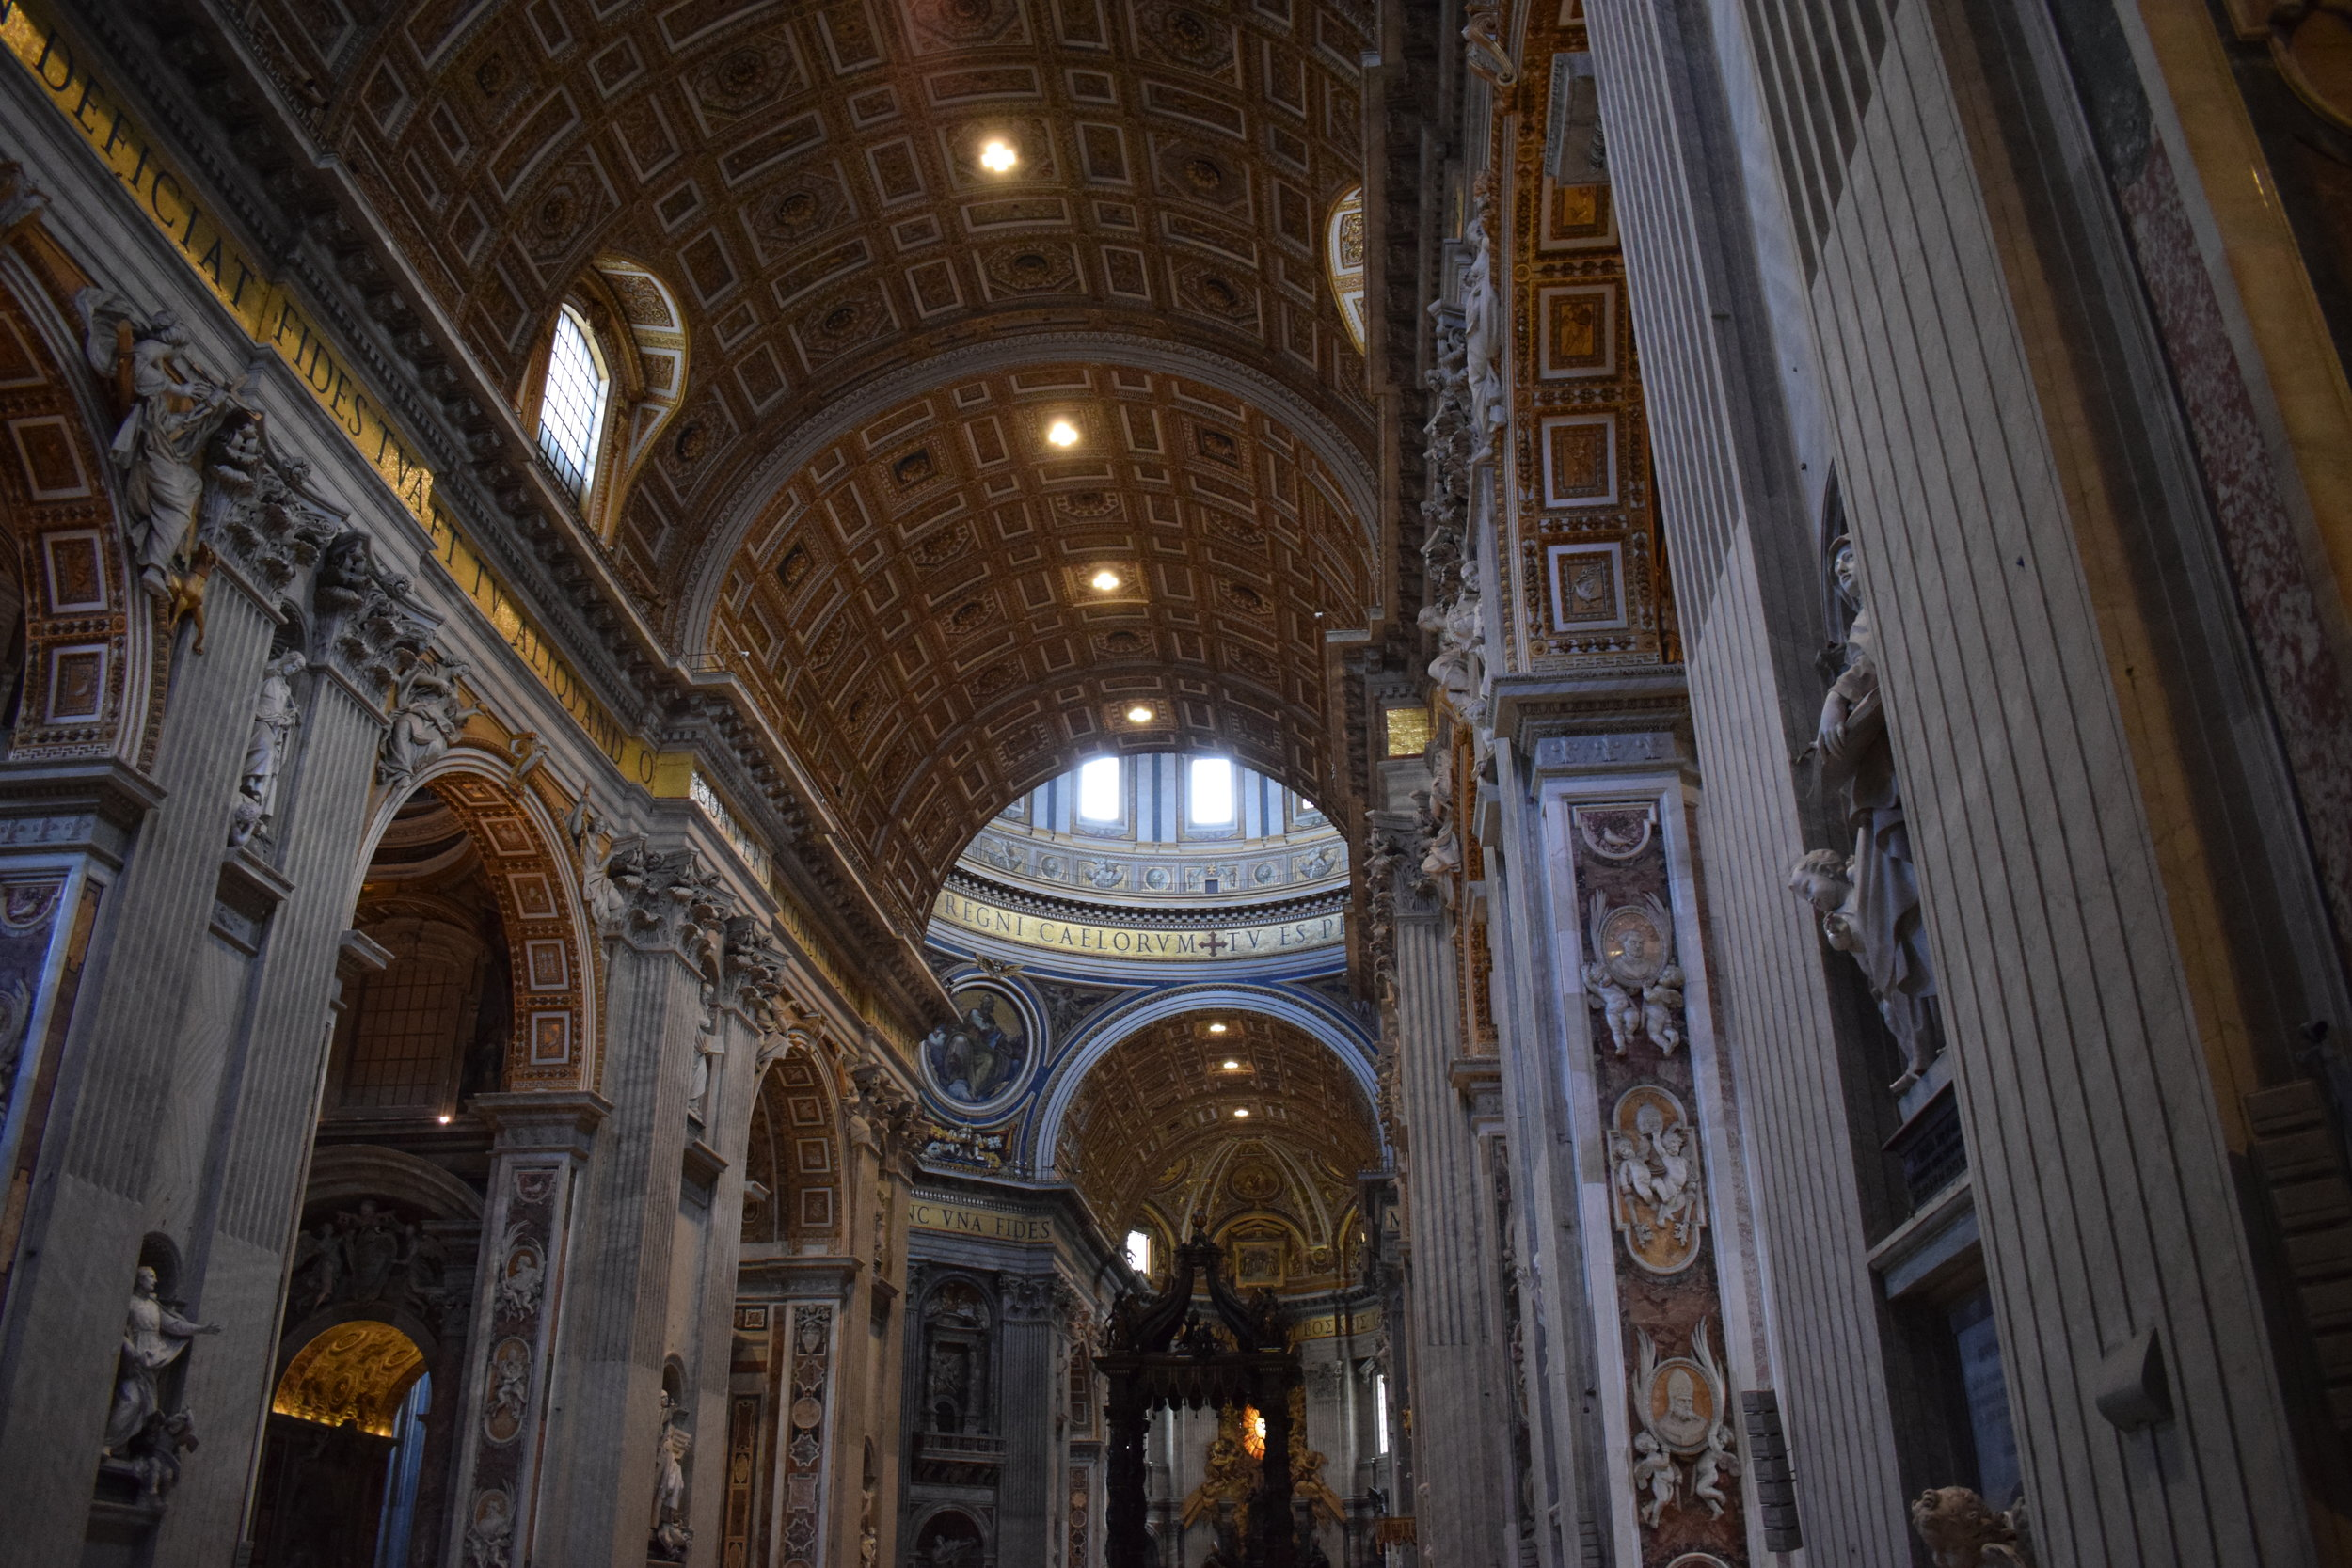 St Peter's Basilica is truly a sight to behold, and another one of its plus-points is that entry is free!